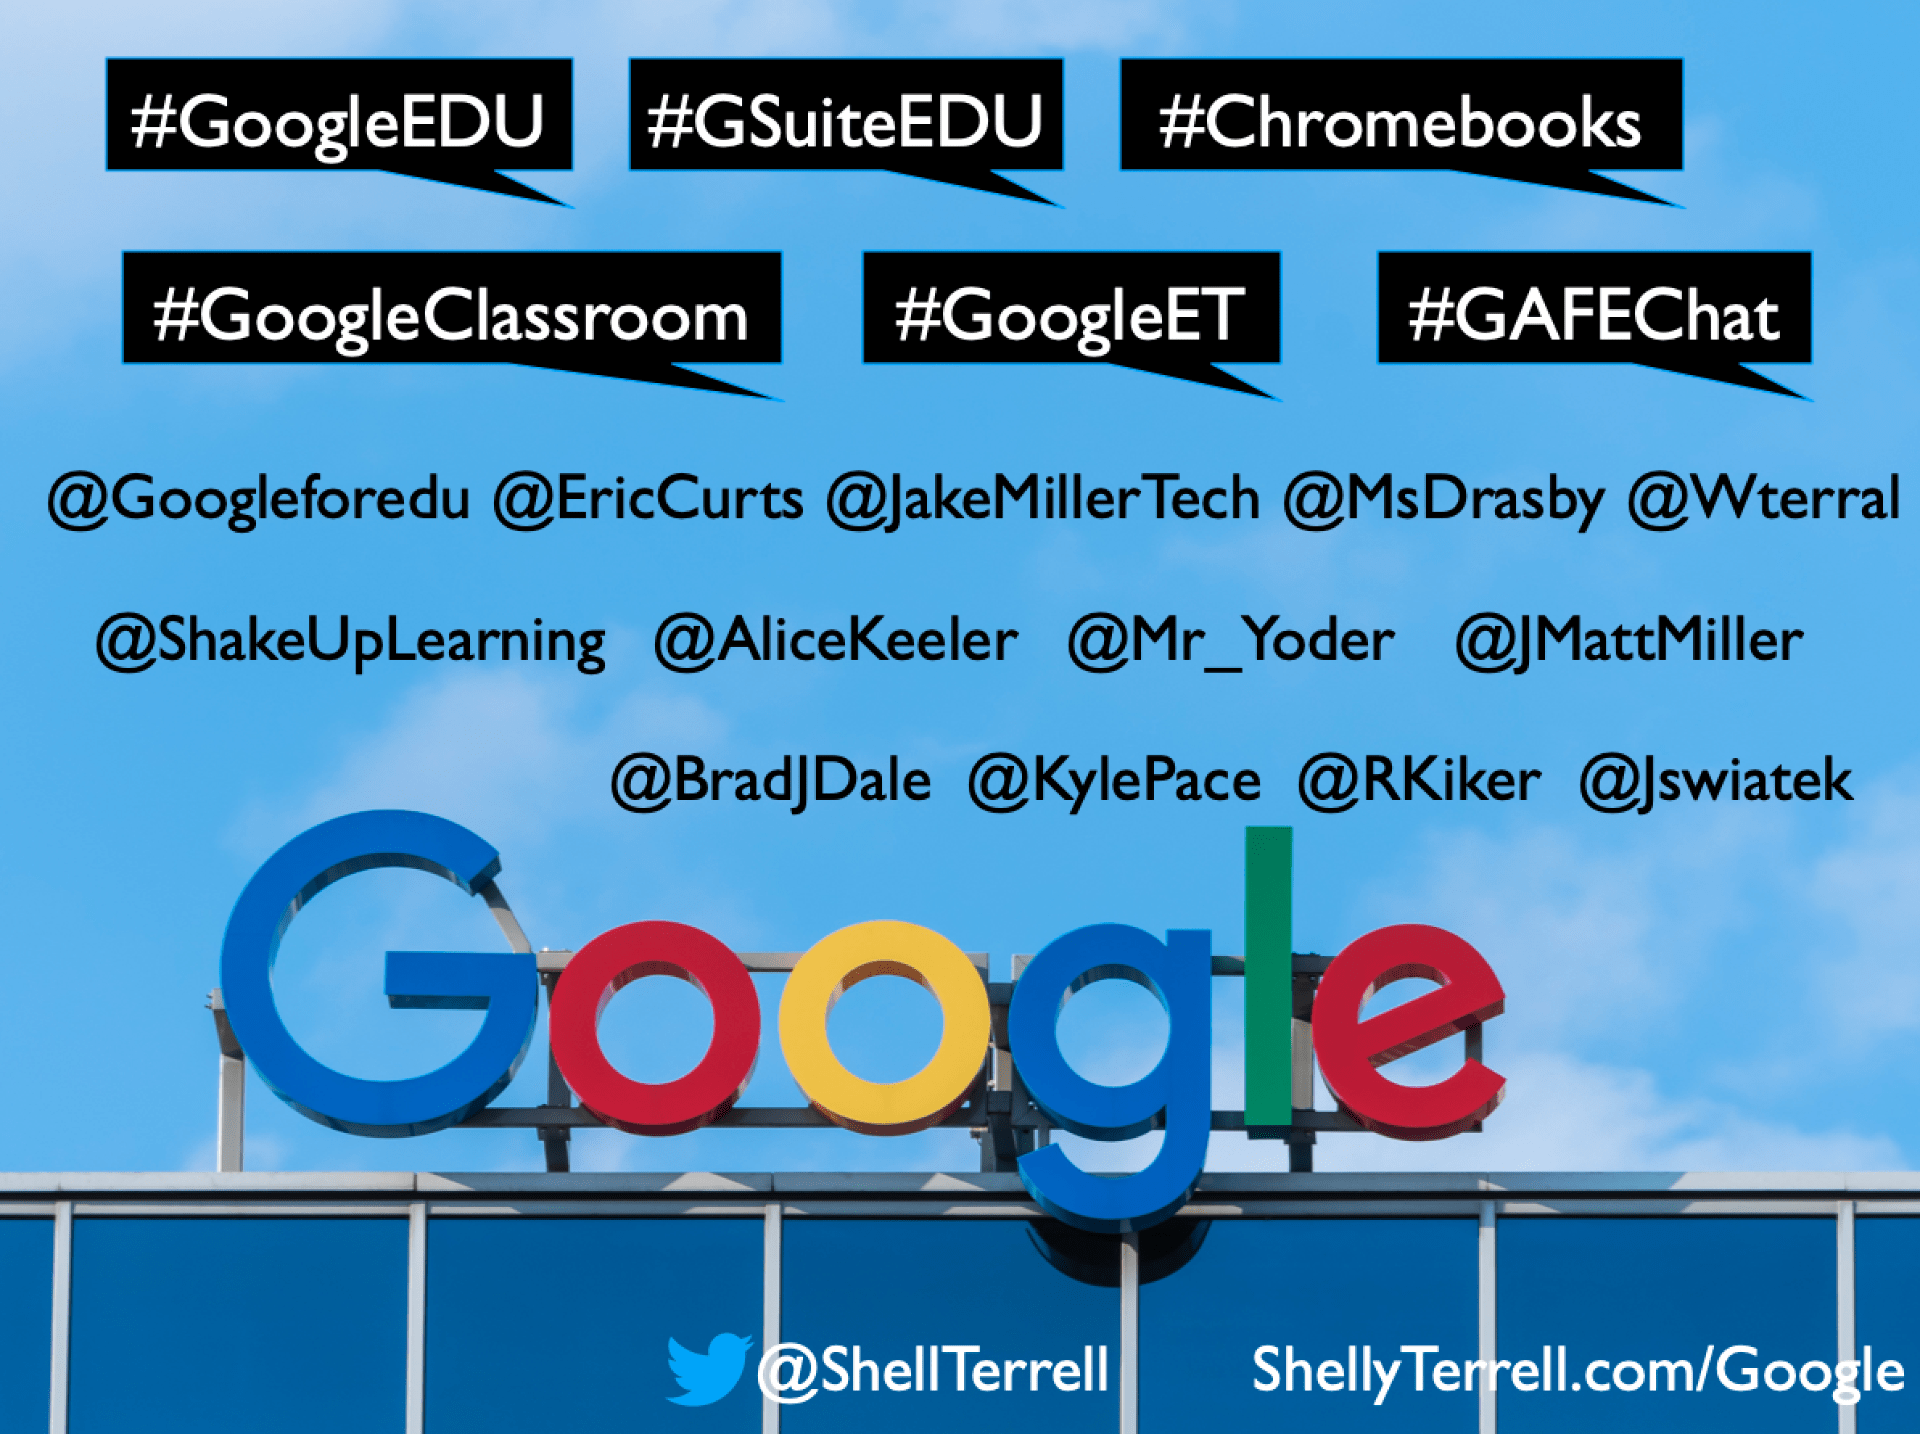 Where to Find Incredible Student Templates for Google Docs, Slides, Sheets and Drawings! – Teacher Reboot Camp